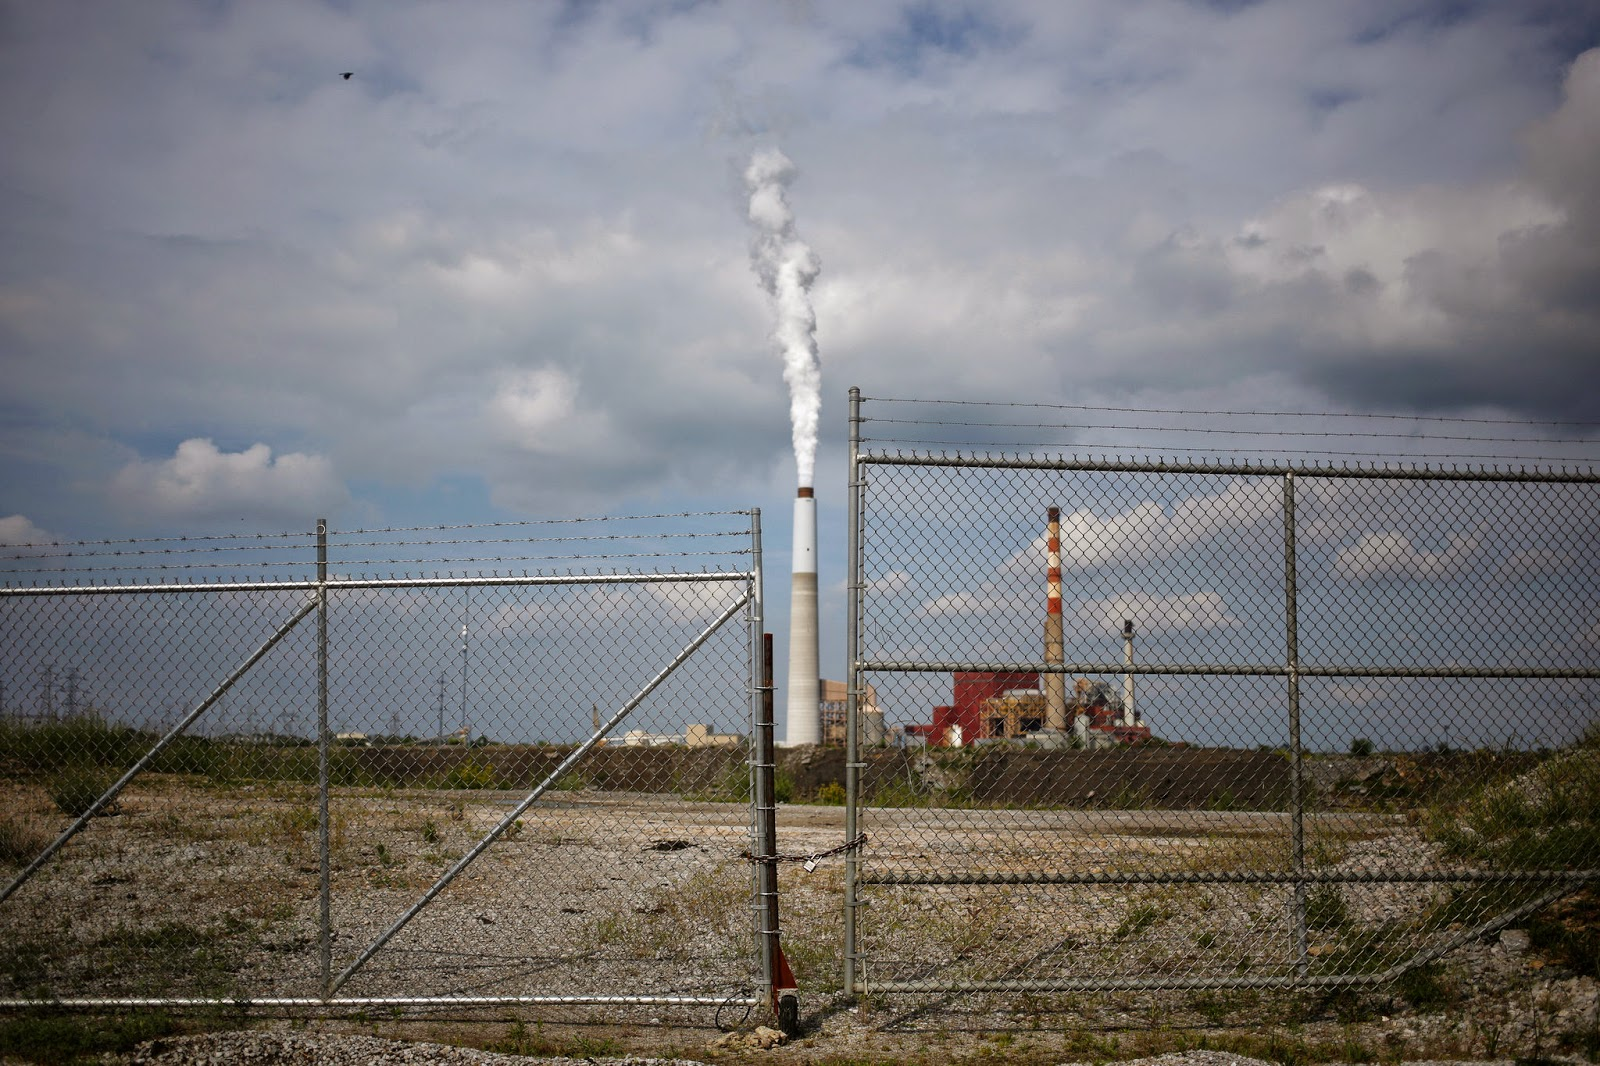 A coal-fired power plant in Kentucky. Coal-heavy states could be economic losers in any climate-change protocol that targets such plants, which are among the largest greenhouse gas emitters. (Credit: Luke Sharrett / The New York Times) Click to enlarge.